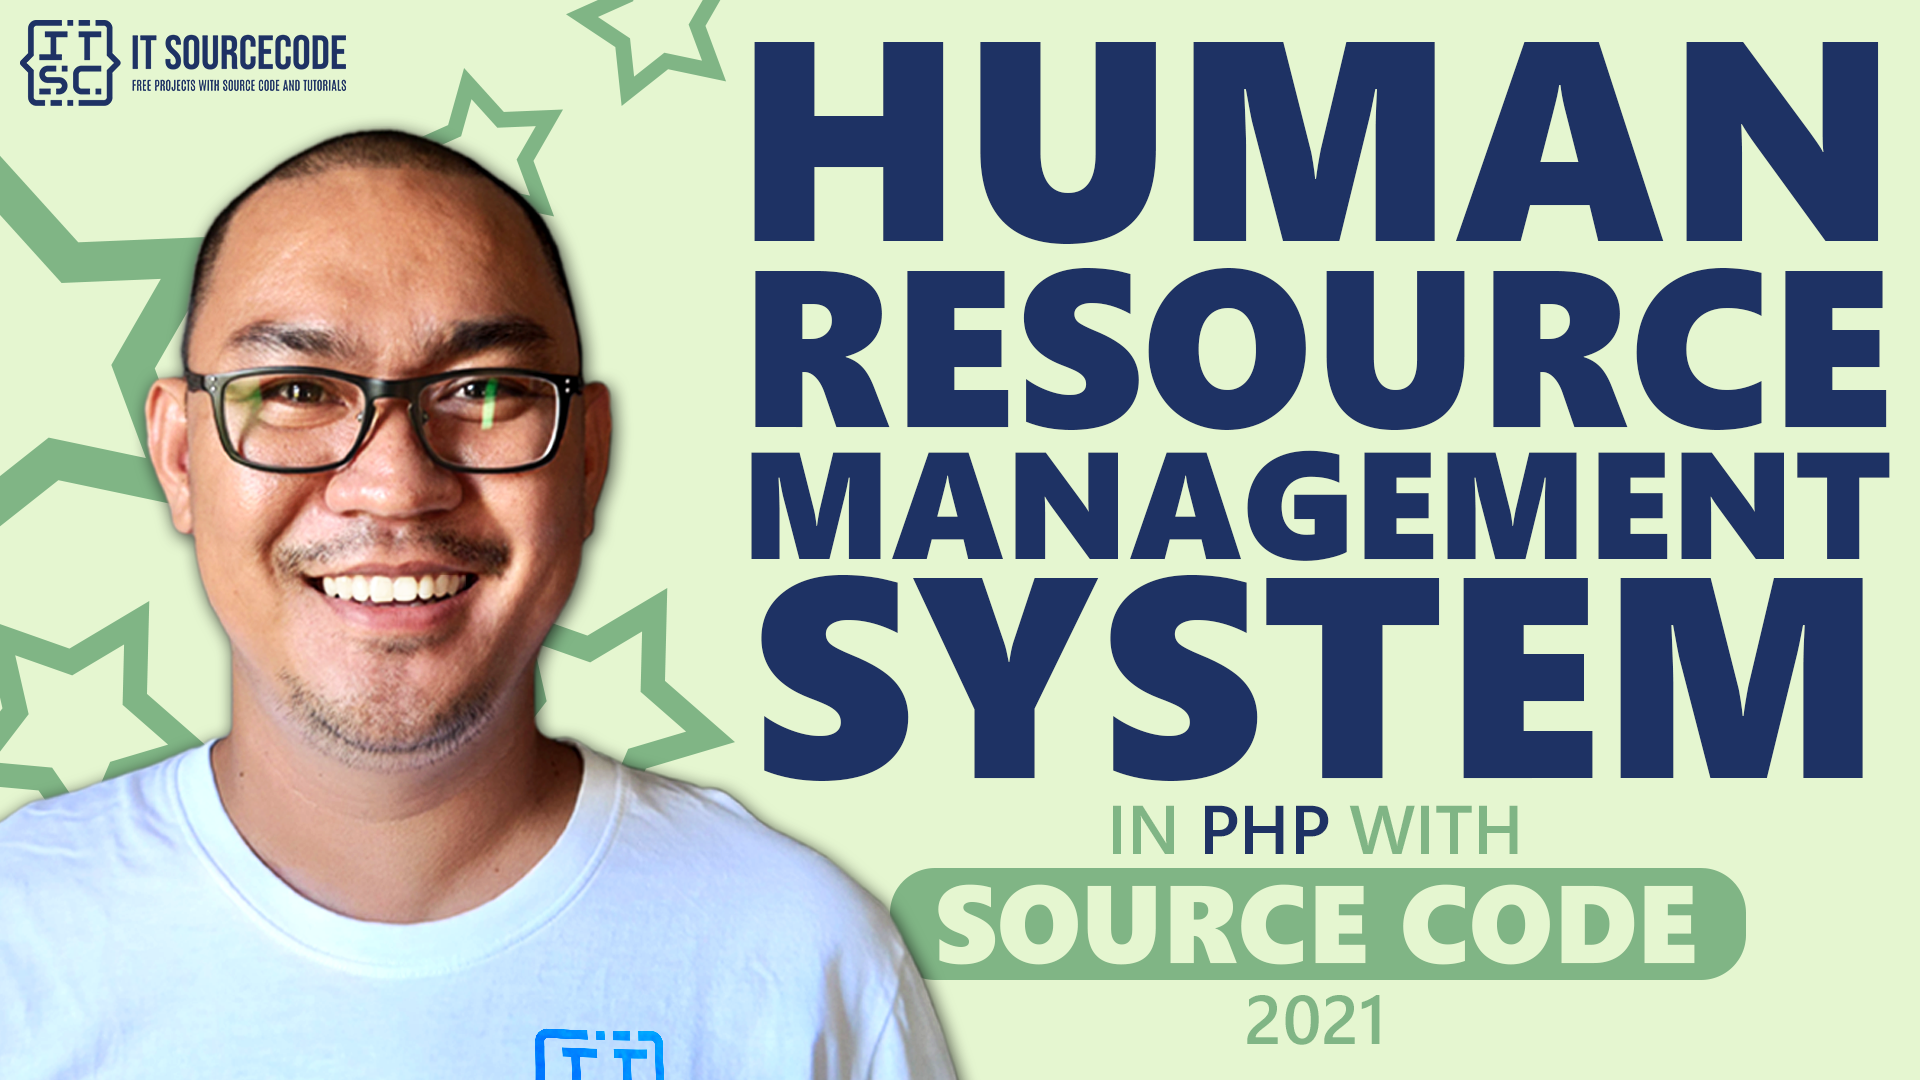 Human Resource Management System in PHP with Source Code